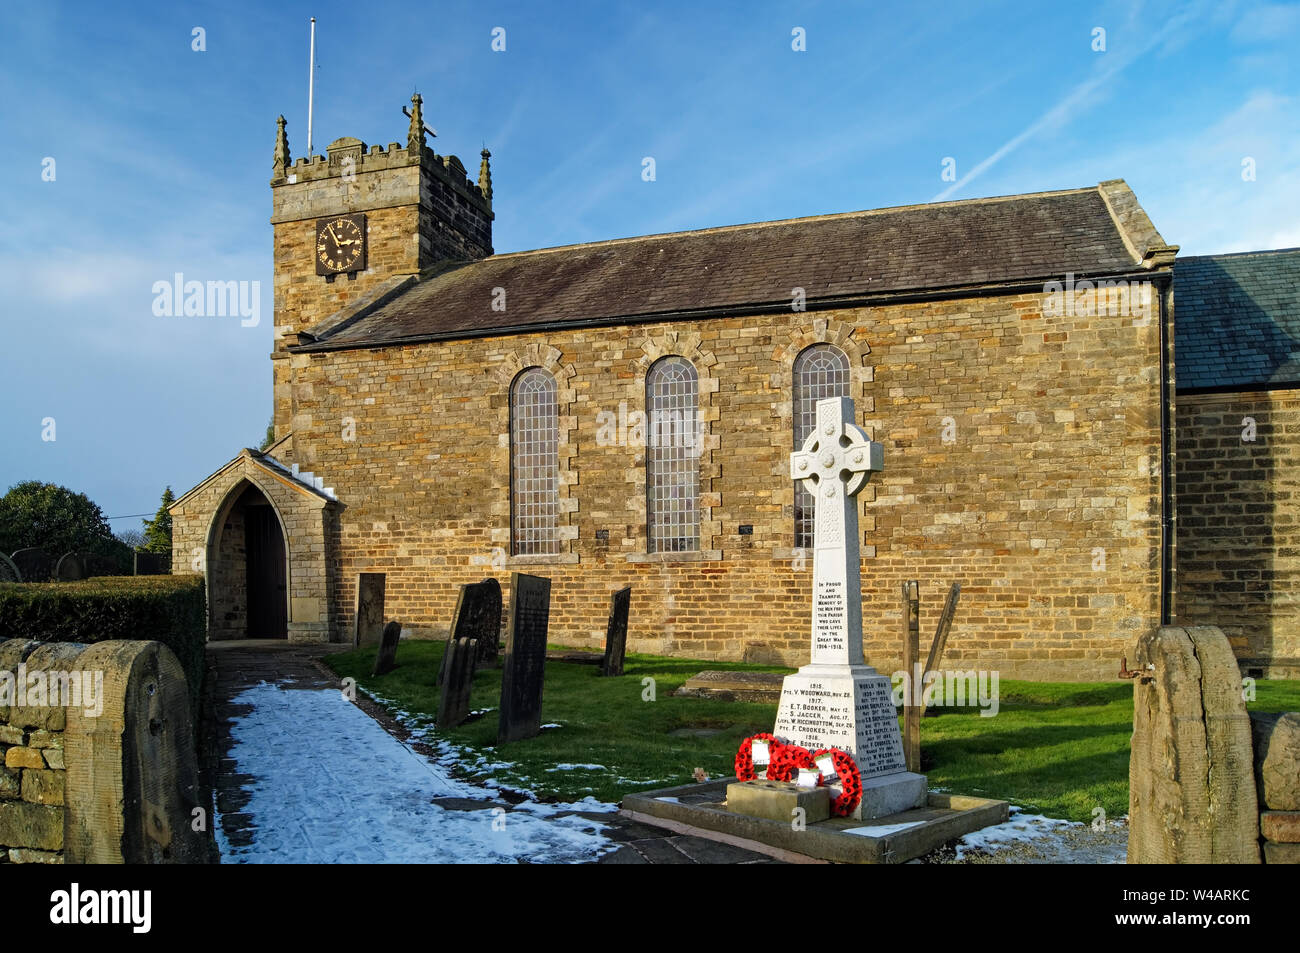 UK,Derbyshire,Holmesfield,St Swithin's Church & War Memorial Banque D'Images